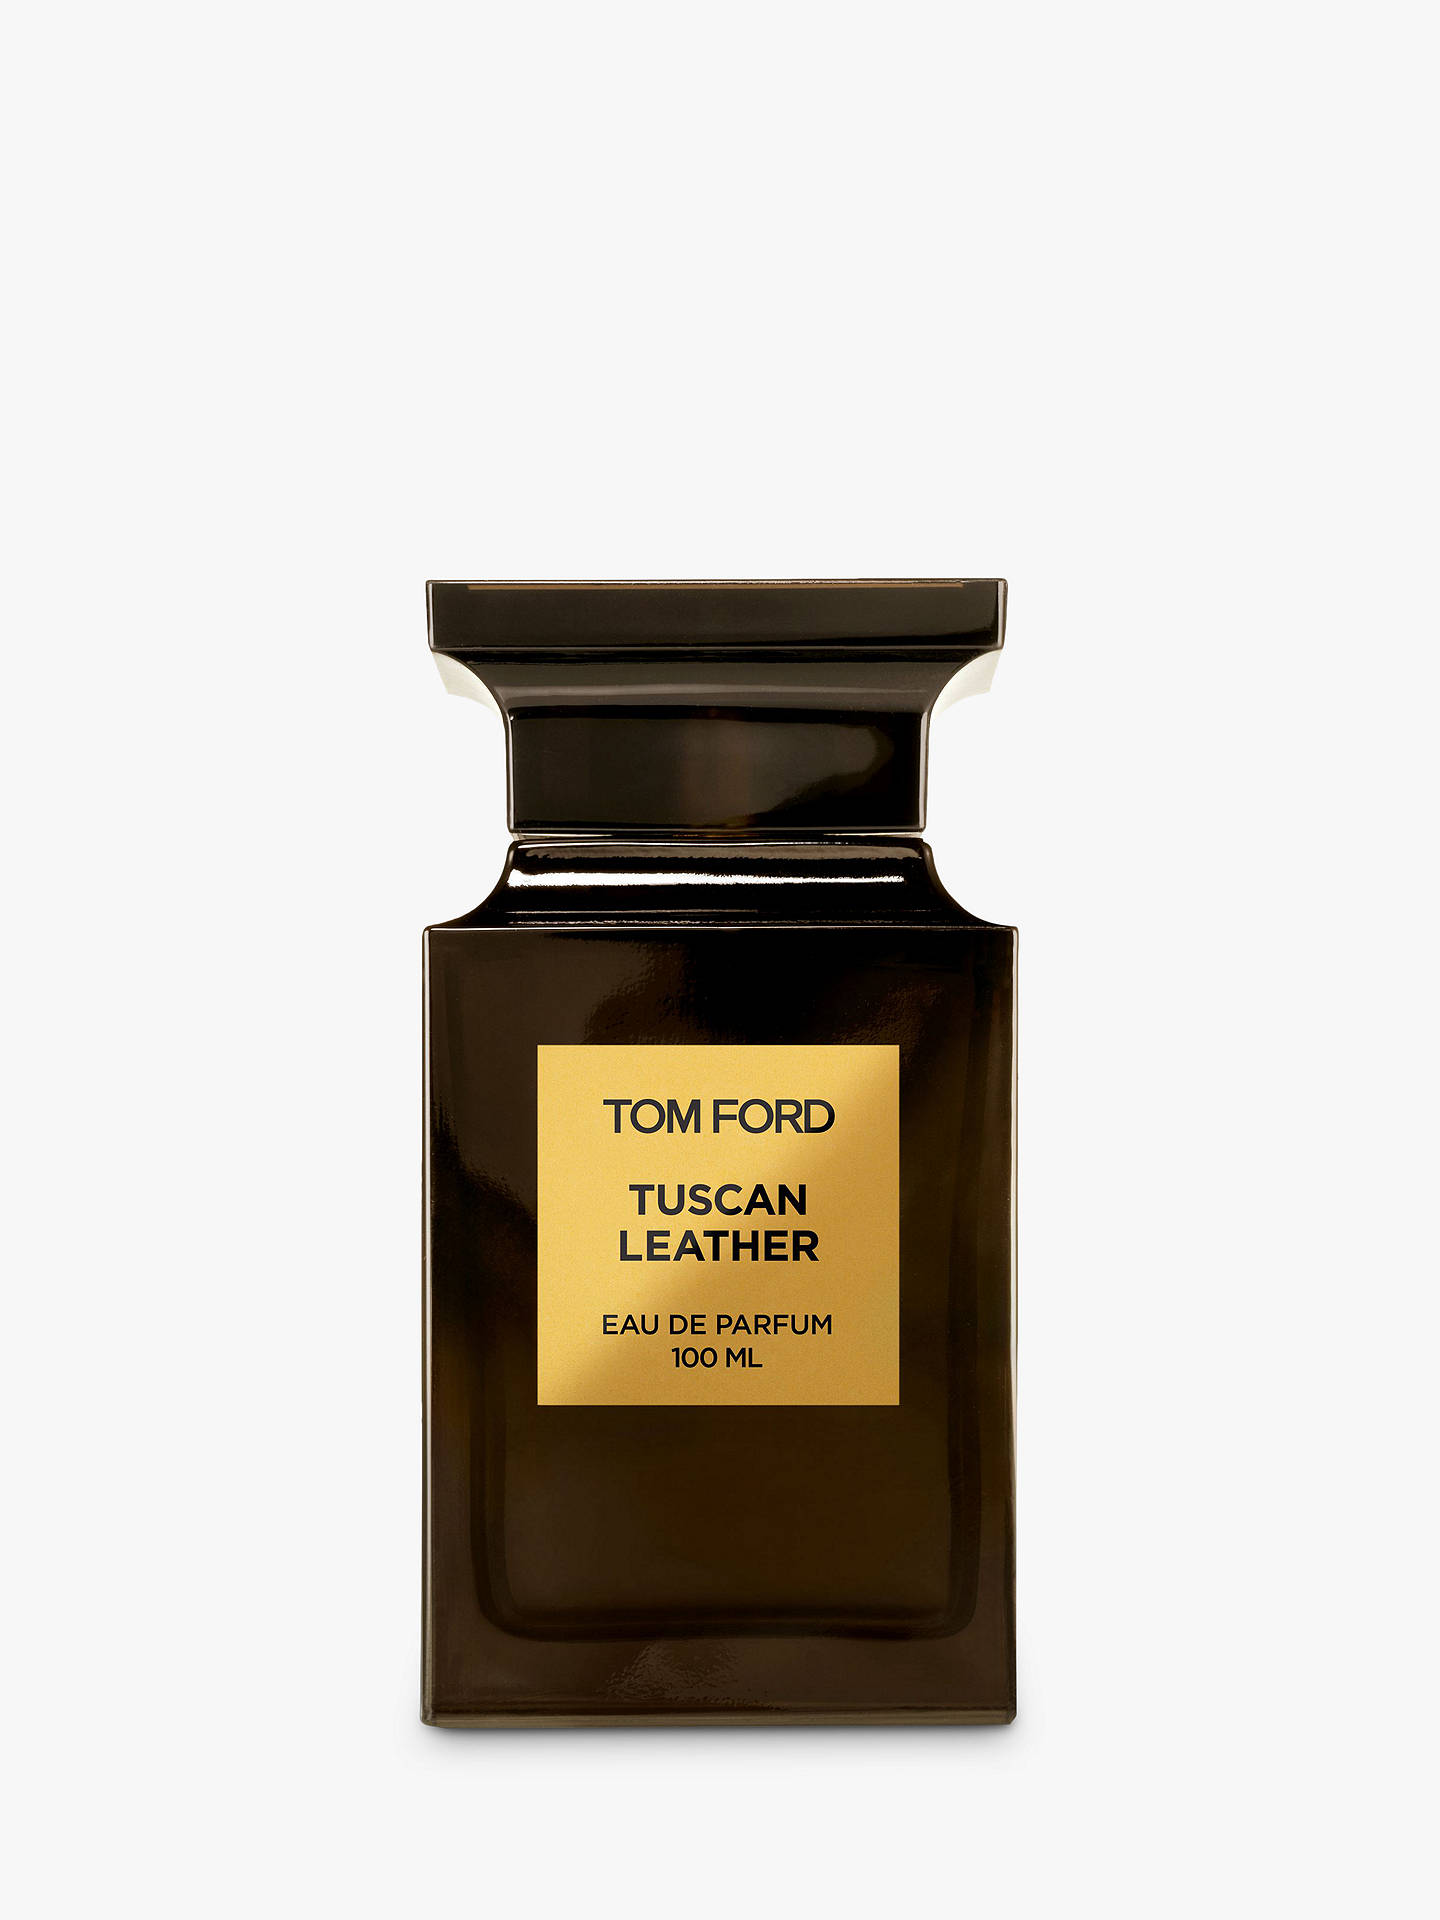 93f6f8a9fbdd Buy TOM FORD Private Blend Tuscan Leather Eau de Parfum, 100ml Online at  johnlewis.